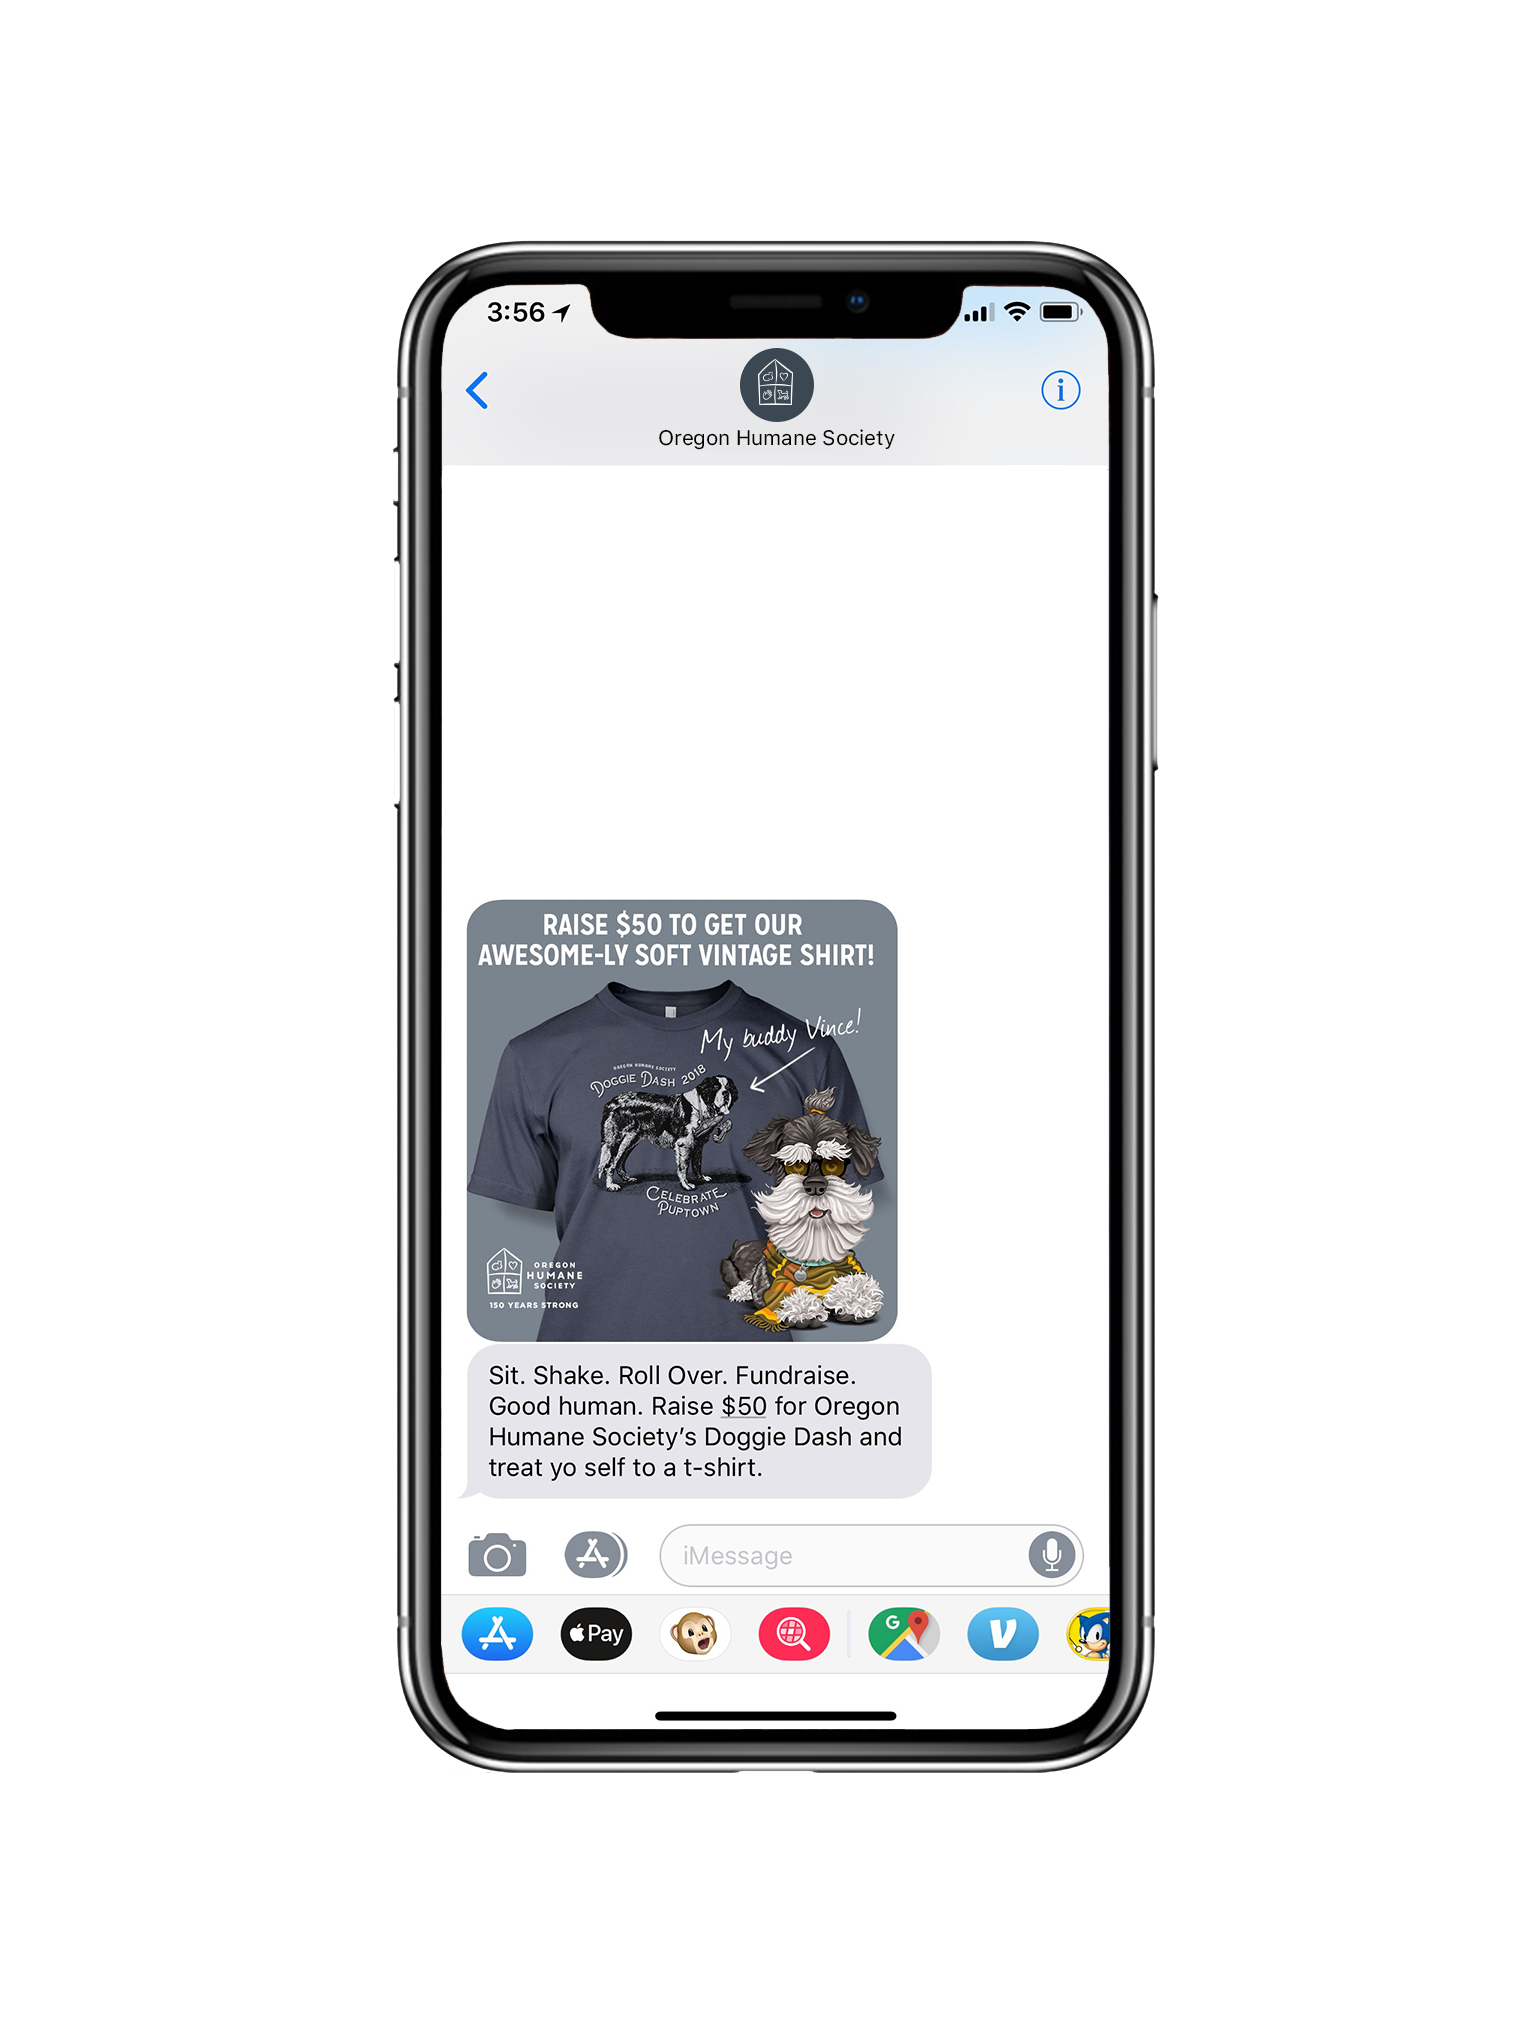 2018_CauseMic_iPhone_OHS_mock (2)